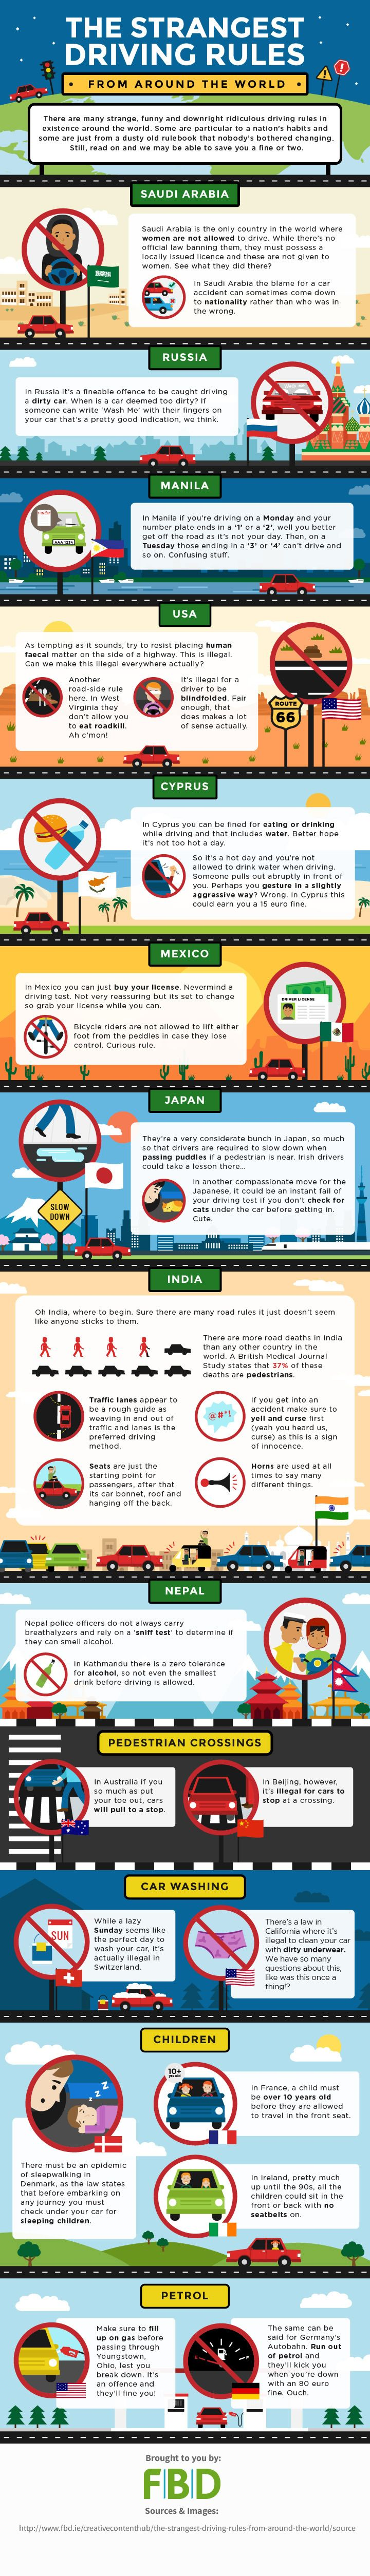 Infographic: The strangest driving rules from around the world - Matador Network